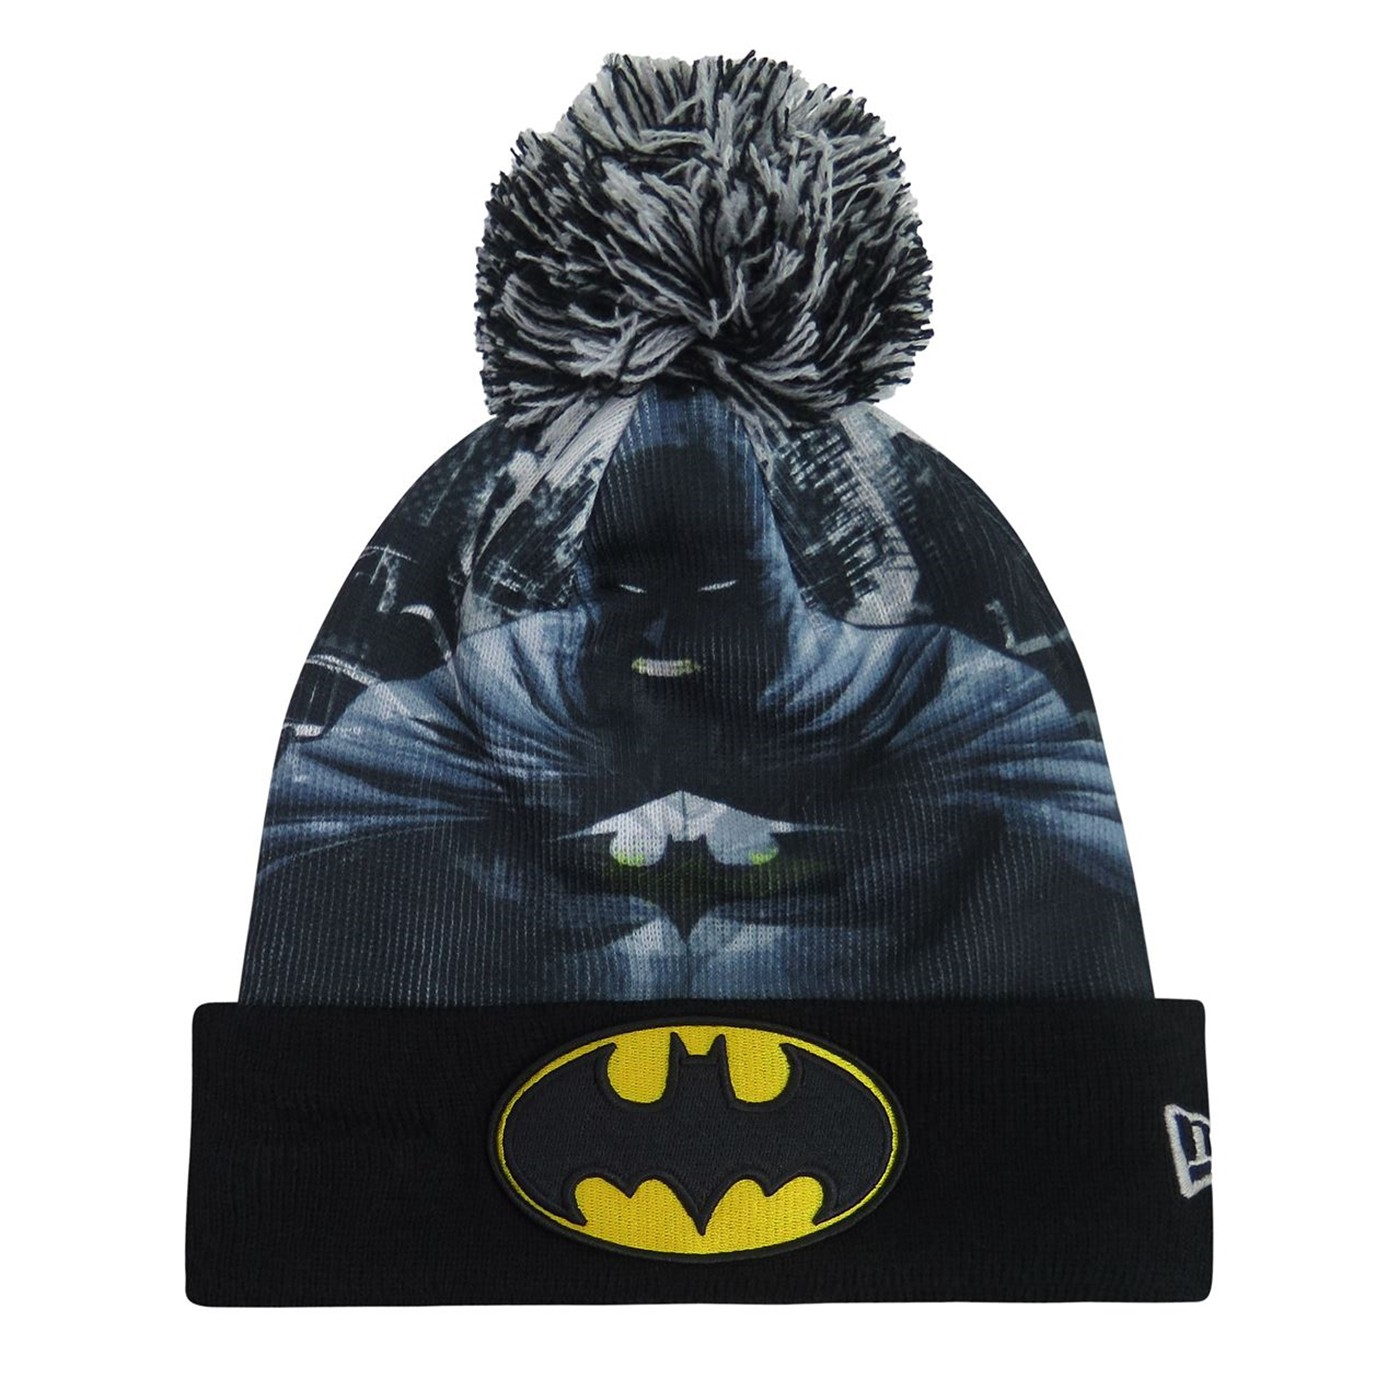 Batman Angry Bats Sublimated Pom Pom Beanie